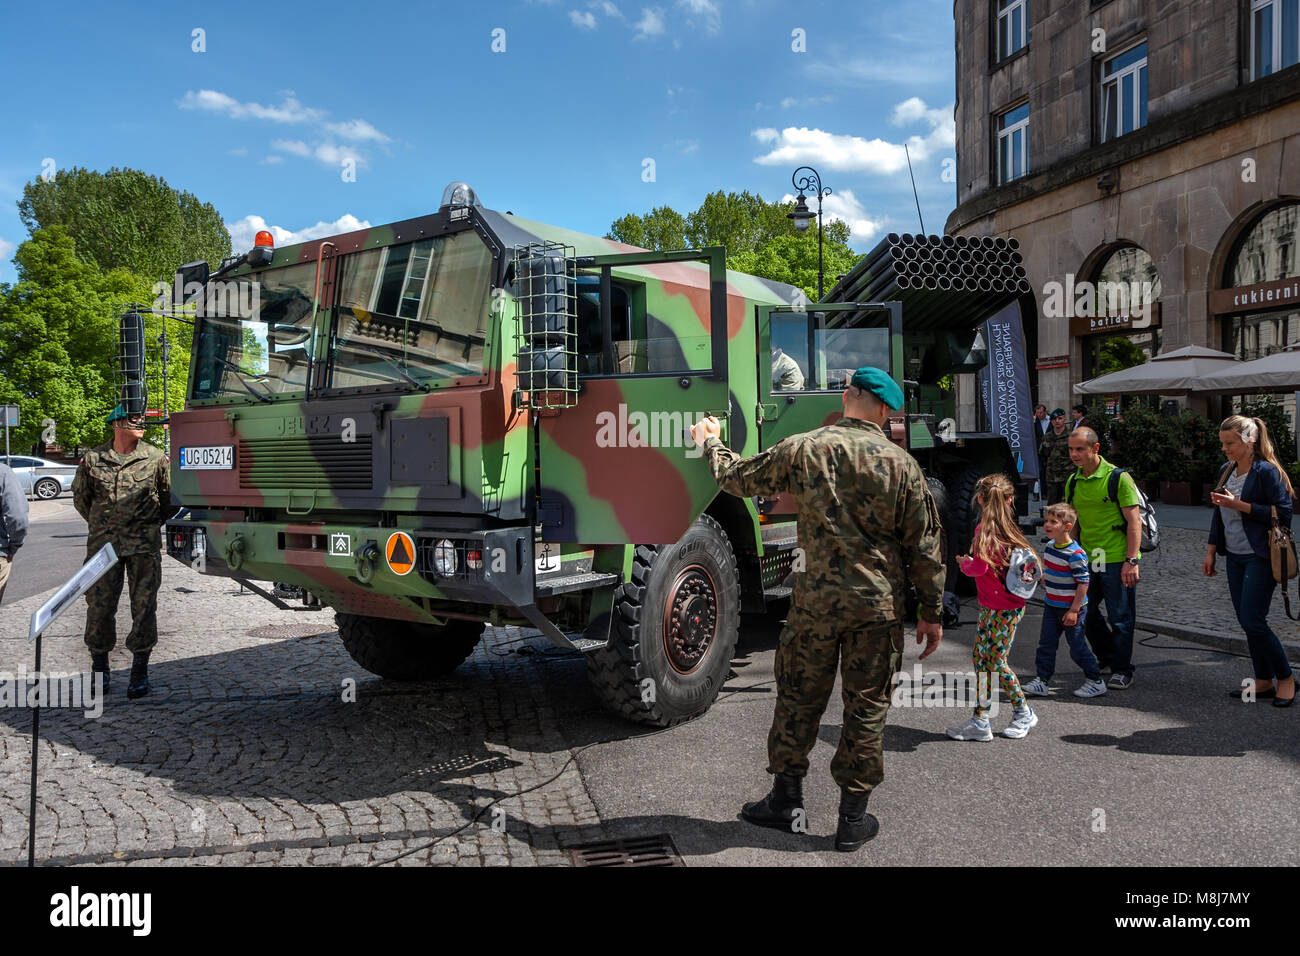 Rocket launcher Langusta, WR-40 Polish self-propelled MLRS. 70th Anniversary of End of World War II. WARSAW, POLAND - Stock Image